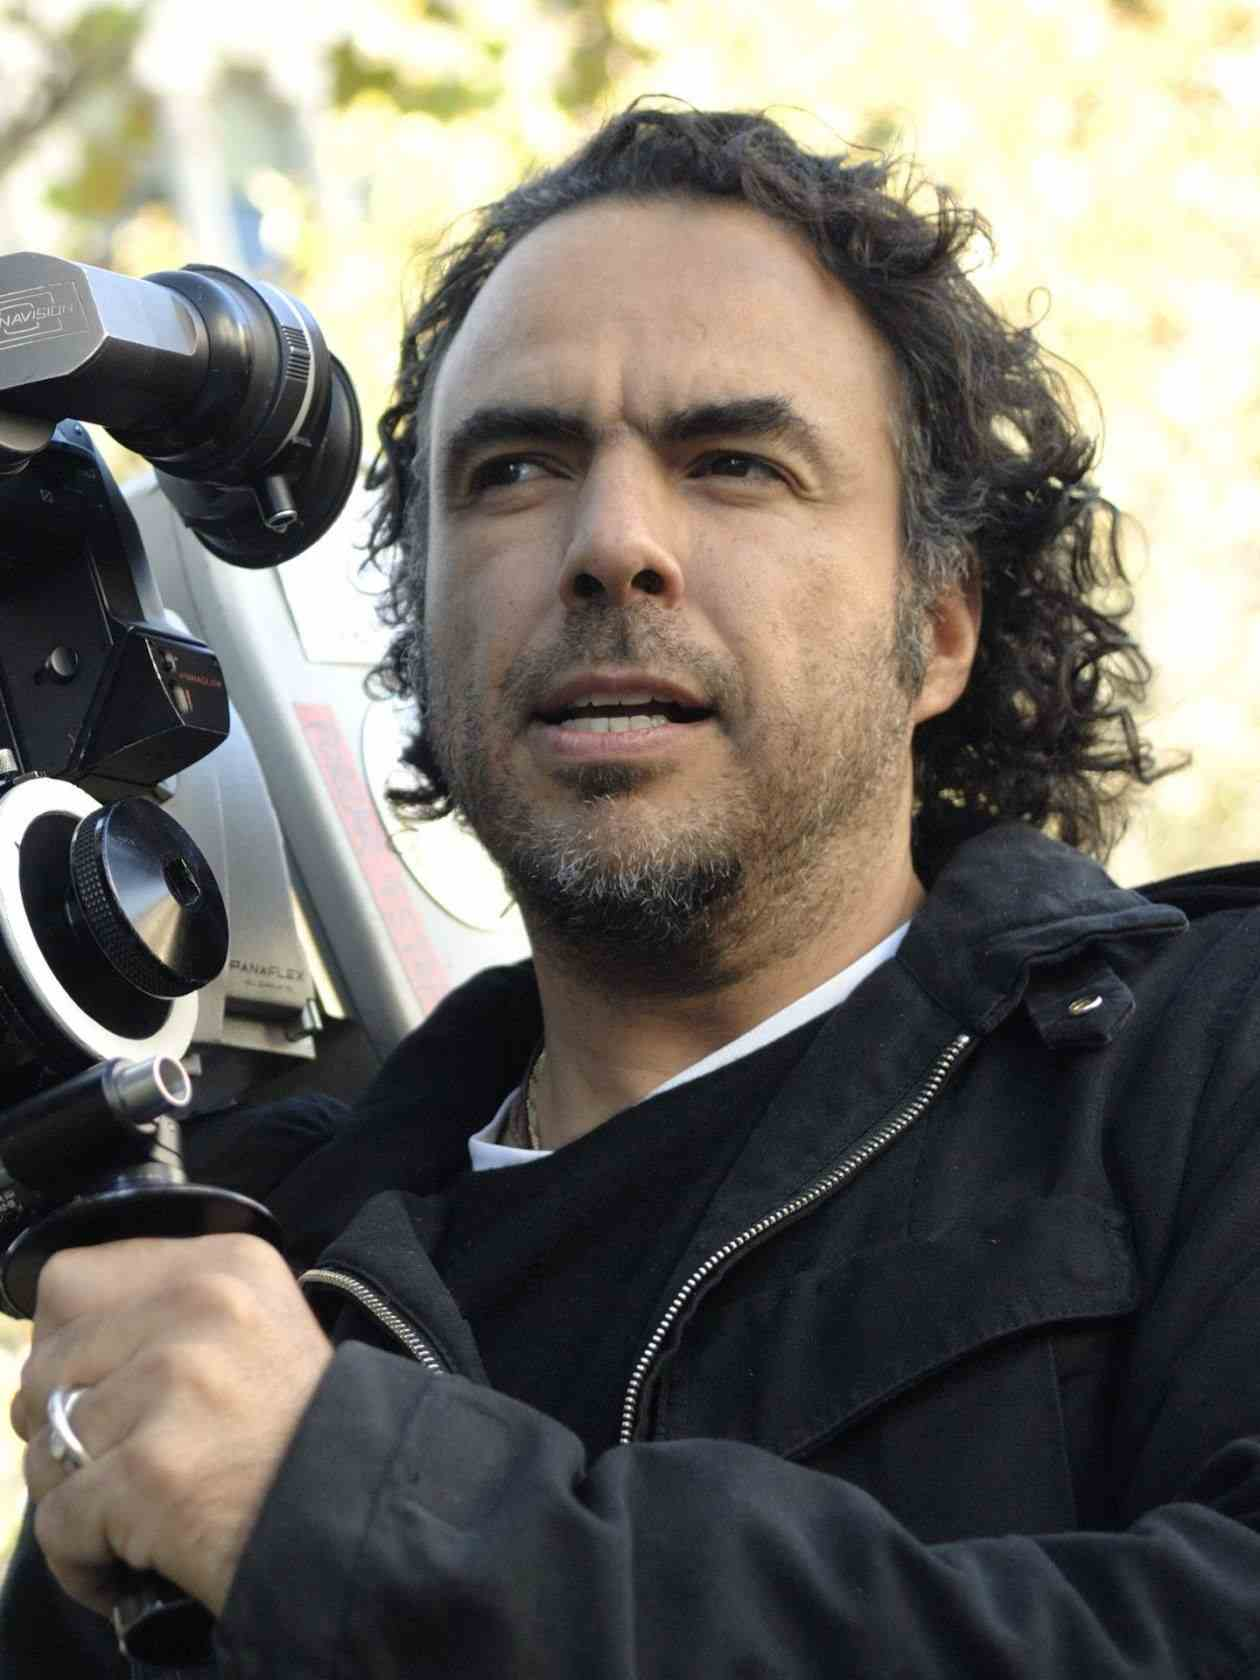 Alejandro_González_Iñárritu_with_a_camera_in_production_Cropped